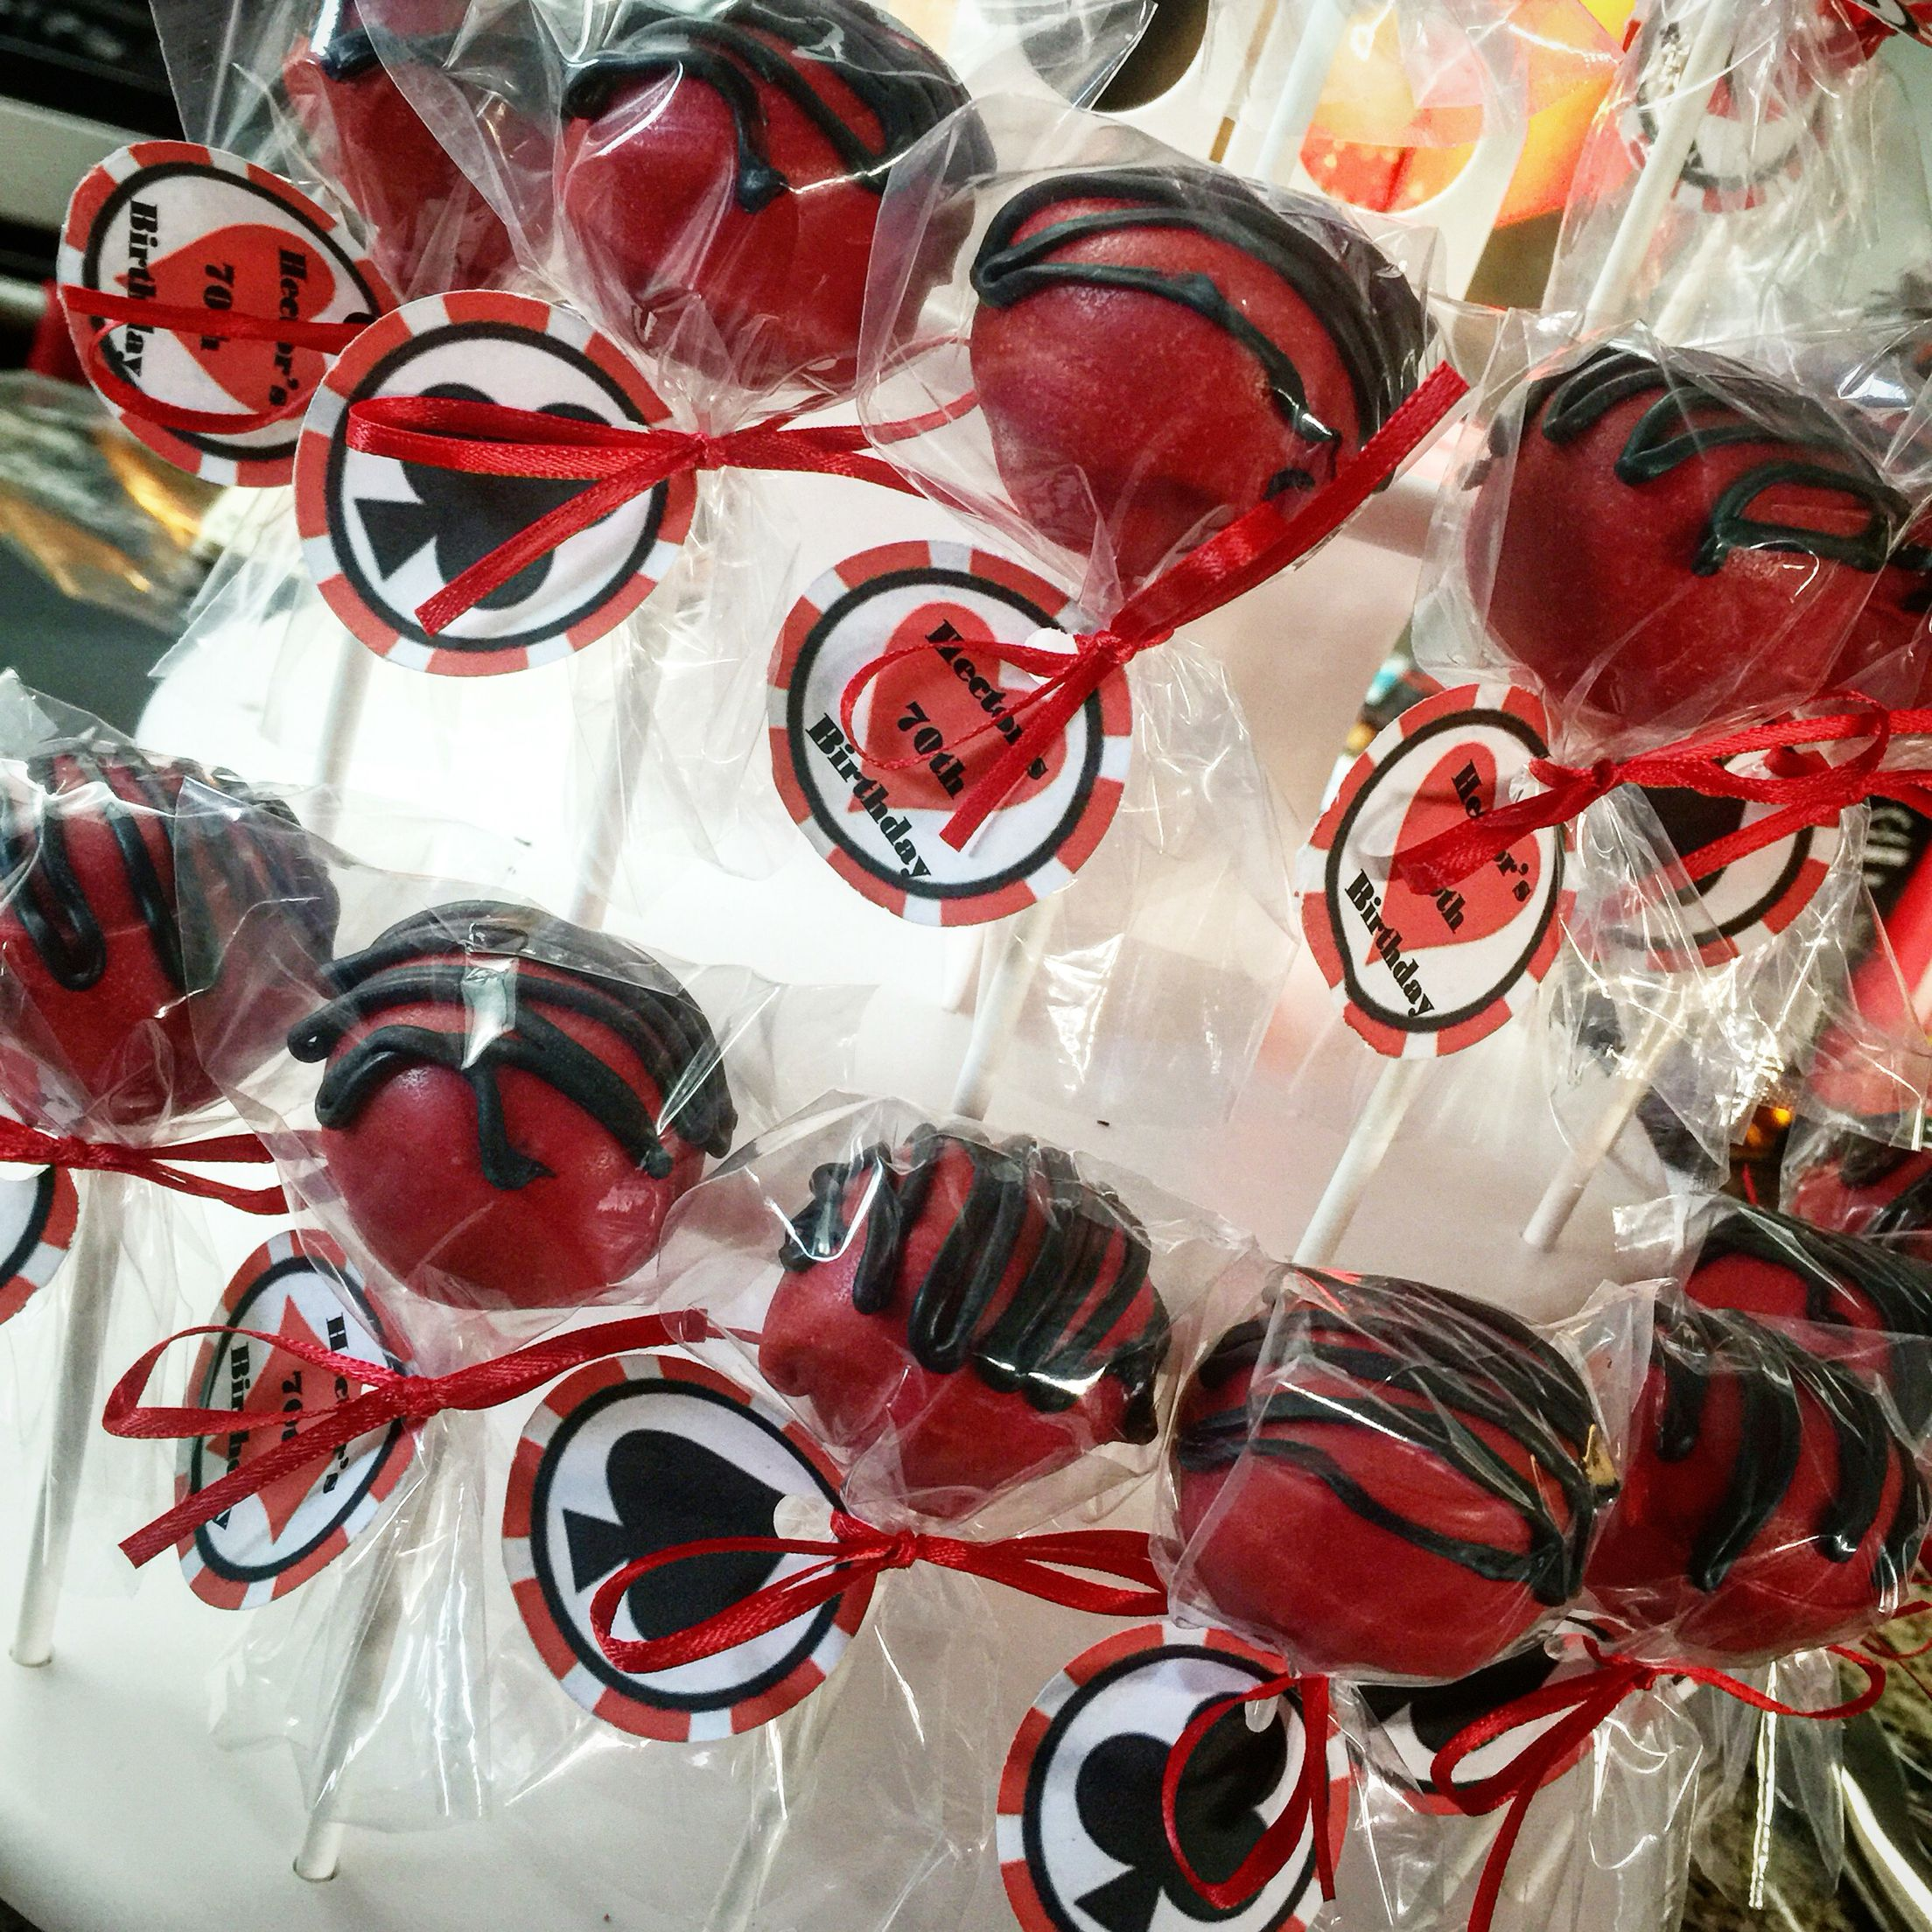 Casino party cake pops. Casino party, Party cakes, Party